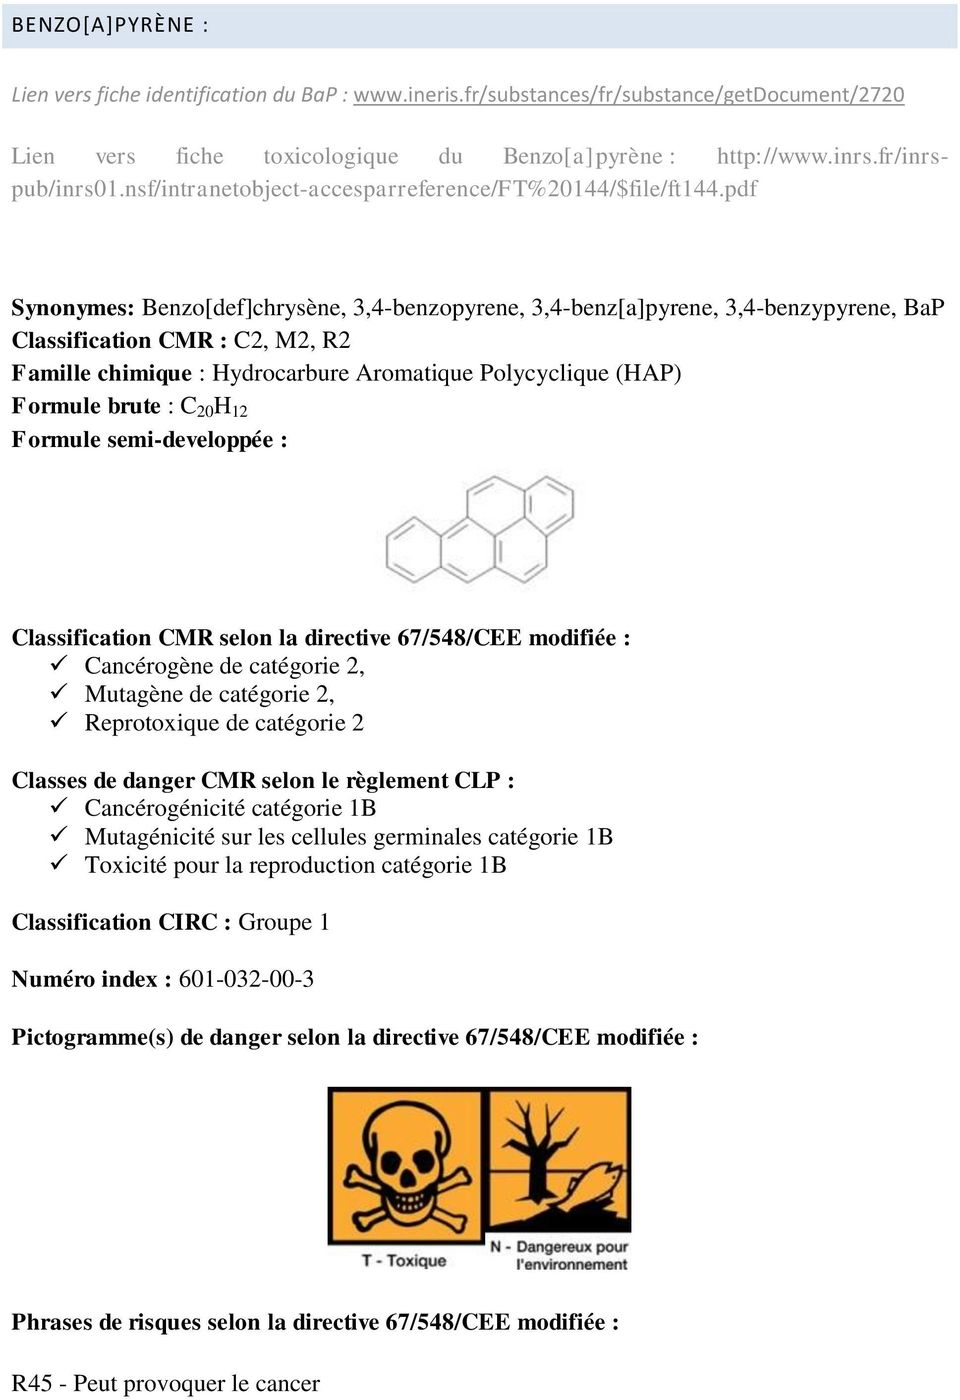 pdf Synonymes: Benzo[def]chrysène, 3,4-benzopyrene, 3,4-benz[a]pyrene, 3,4-benzypyrene, BaP Classification CMR : C2, M2, R2 Famille chimique : Hydrocarbure Aromatique Polycyclique (HAP) Formule brute